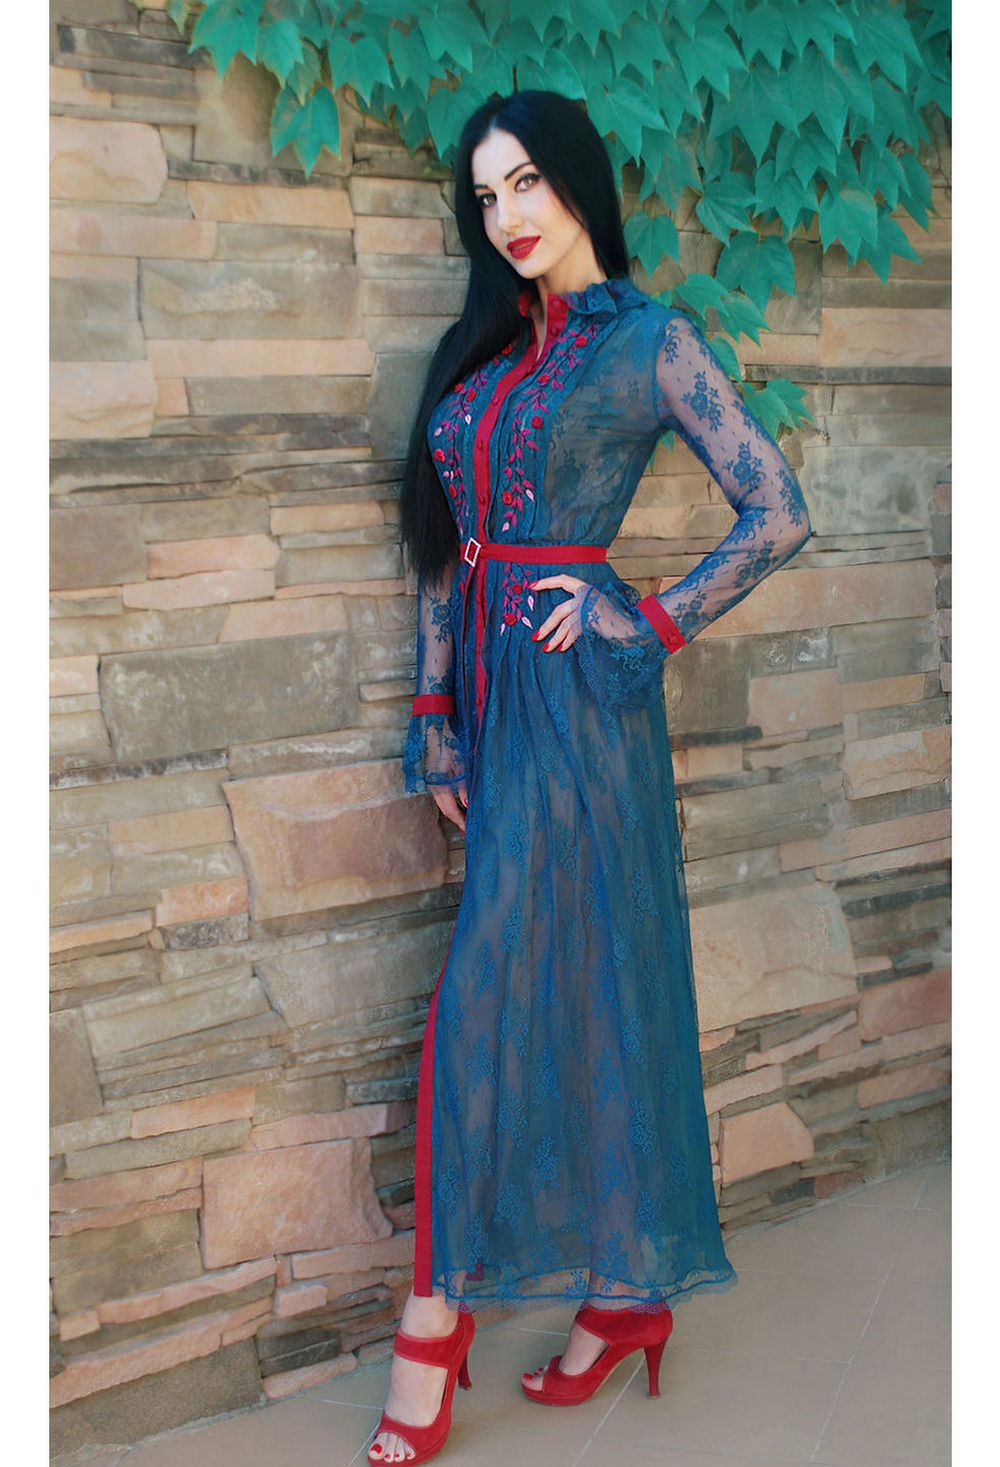 Buy Elegant floor dress with hand embroidery, Original unique long dress, Luxurious guipure dress